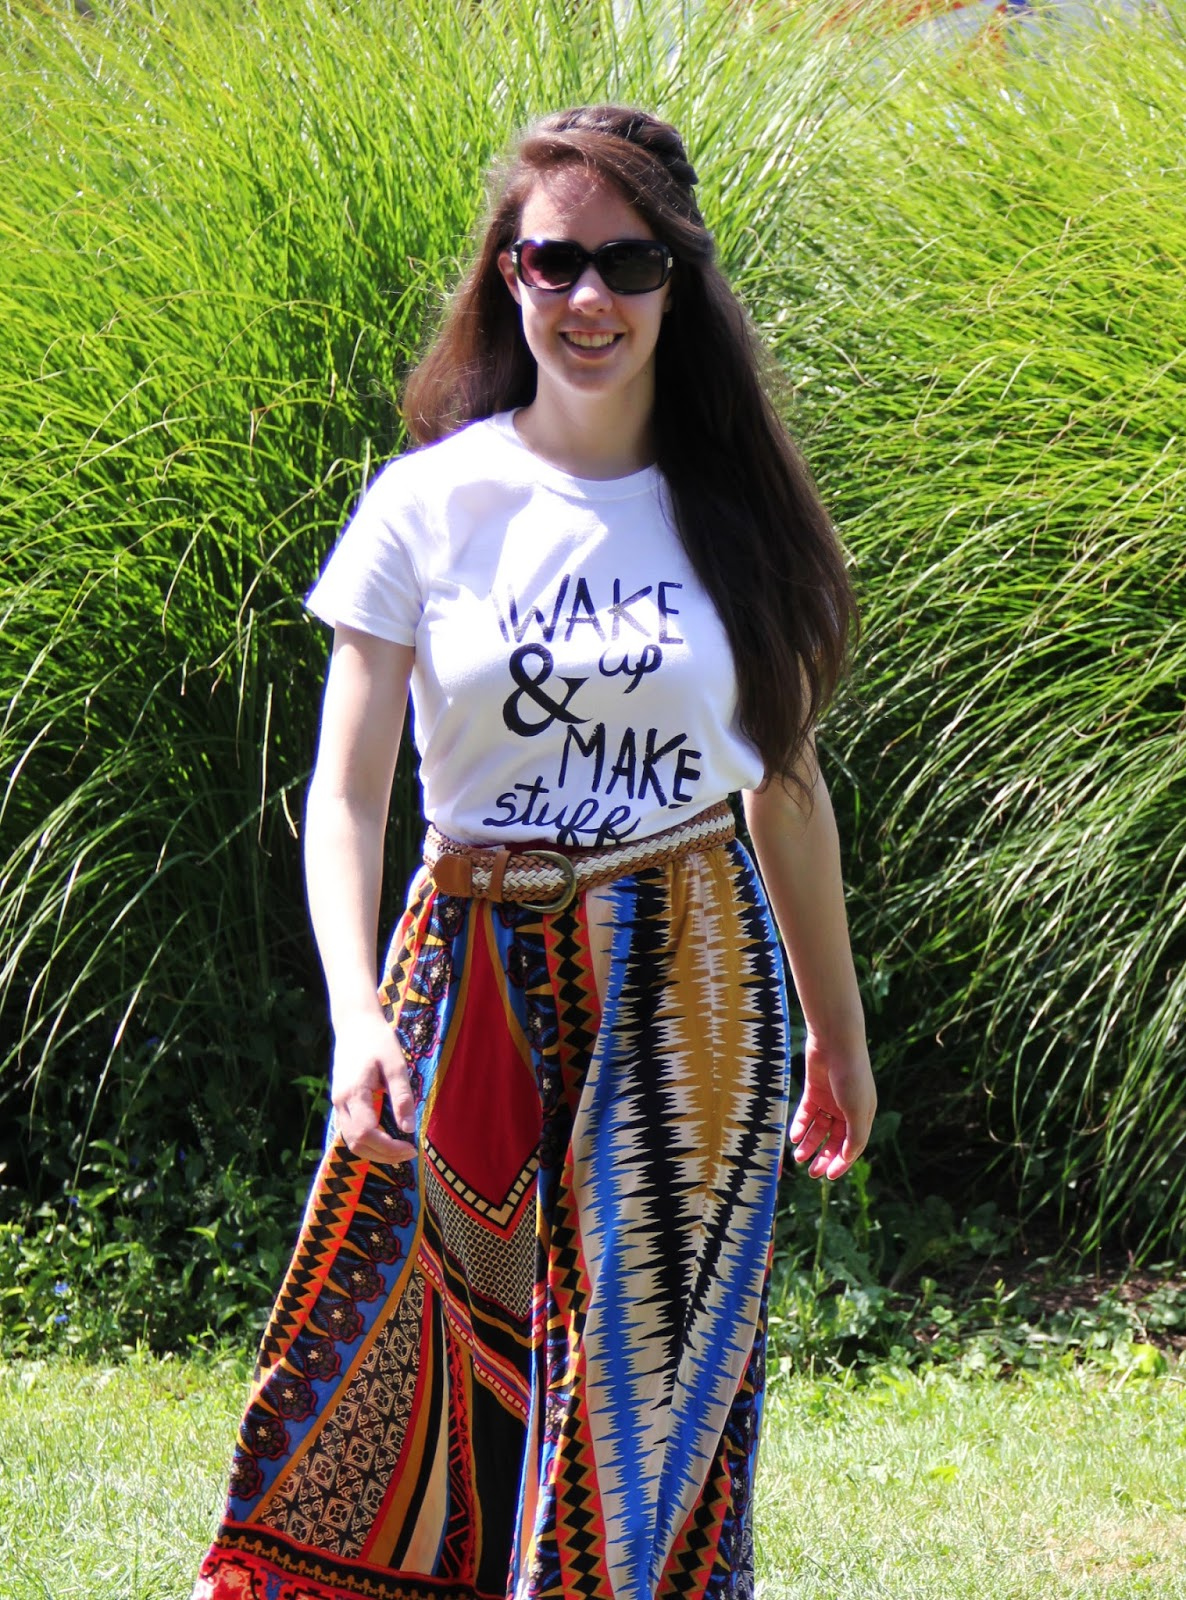 http://www.helloawesomeshop.com/products/6198070-wake-up-make-stuff-ladies-graphic-tee